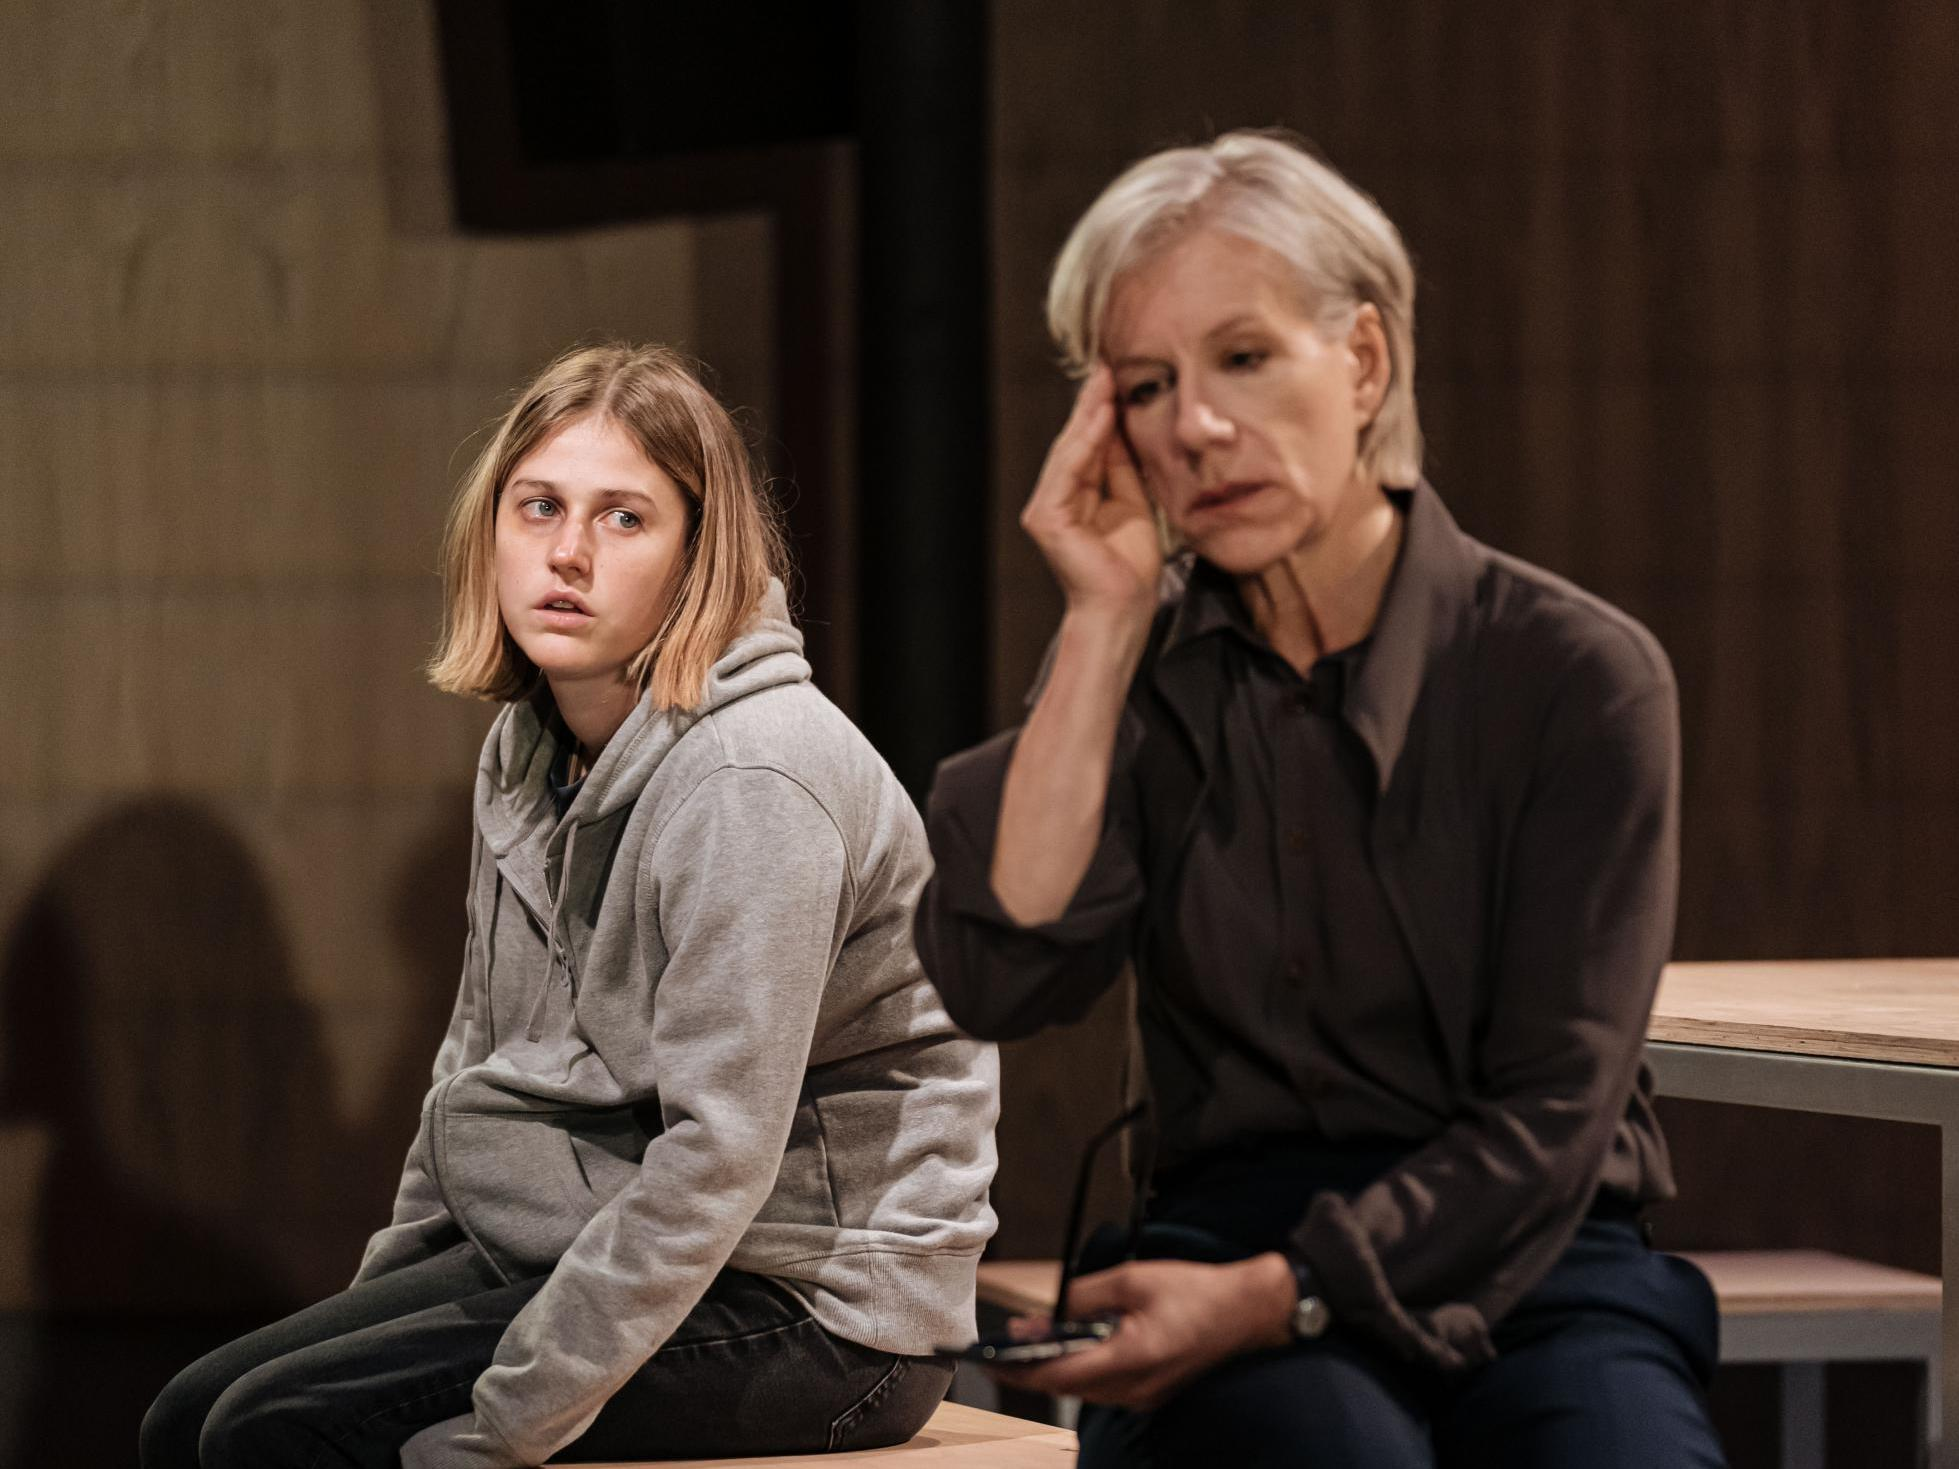 The Doctor, Almeida Theatre review: Juliet Stevenson is magnificent in provocative, wonderfully upsetting production